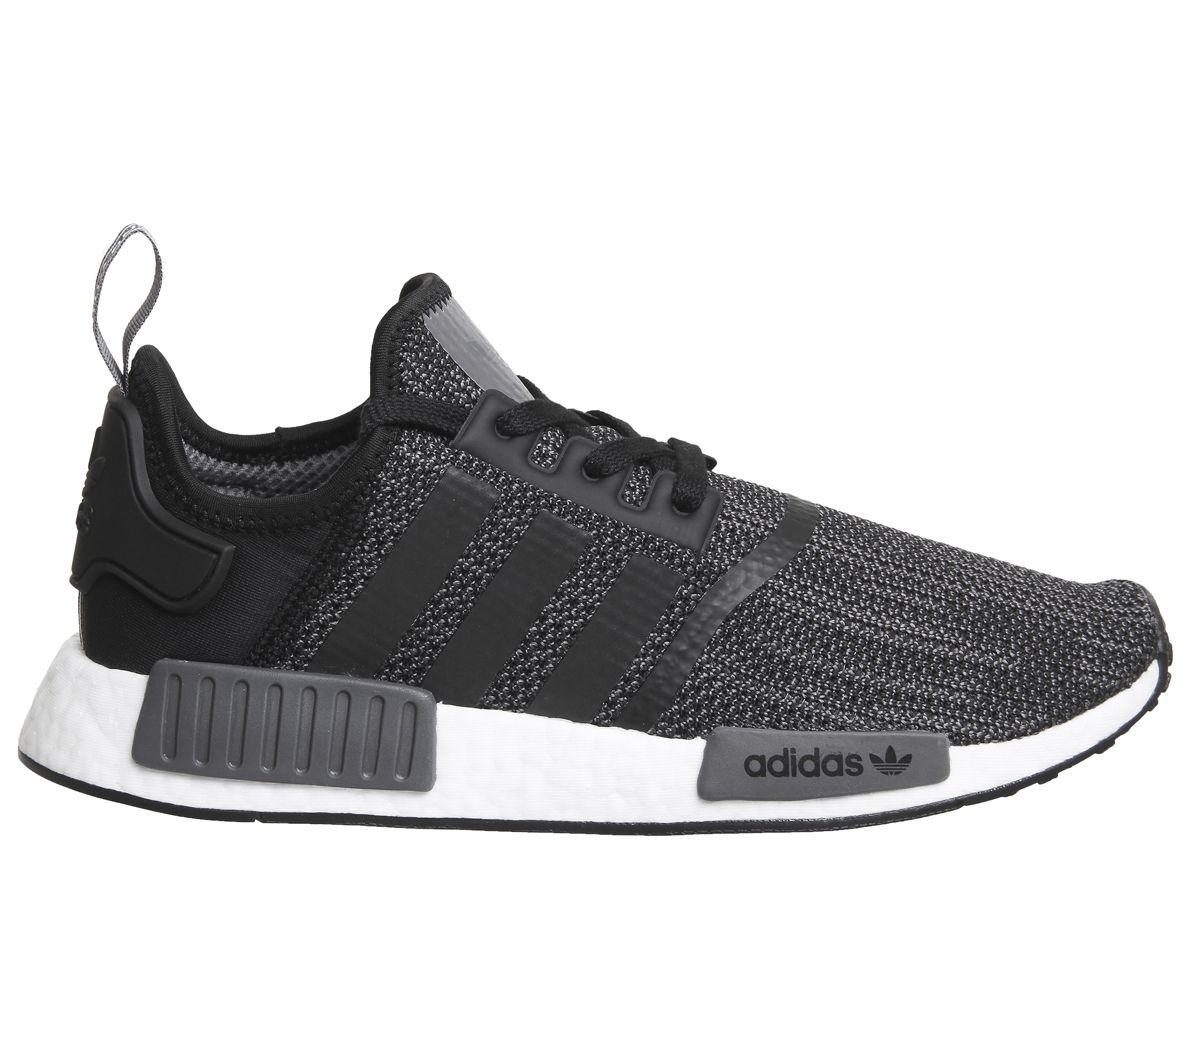 cheap for discount 4b9c1 d2458 Sentinel Adidas Nmd R1 Trainers Core Black Grey White Trainers Shoes